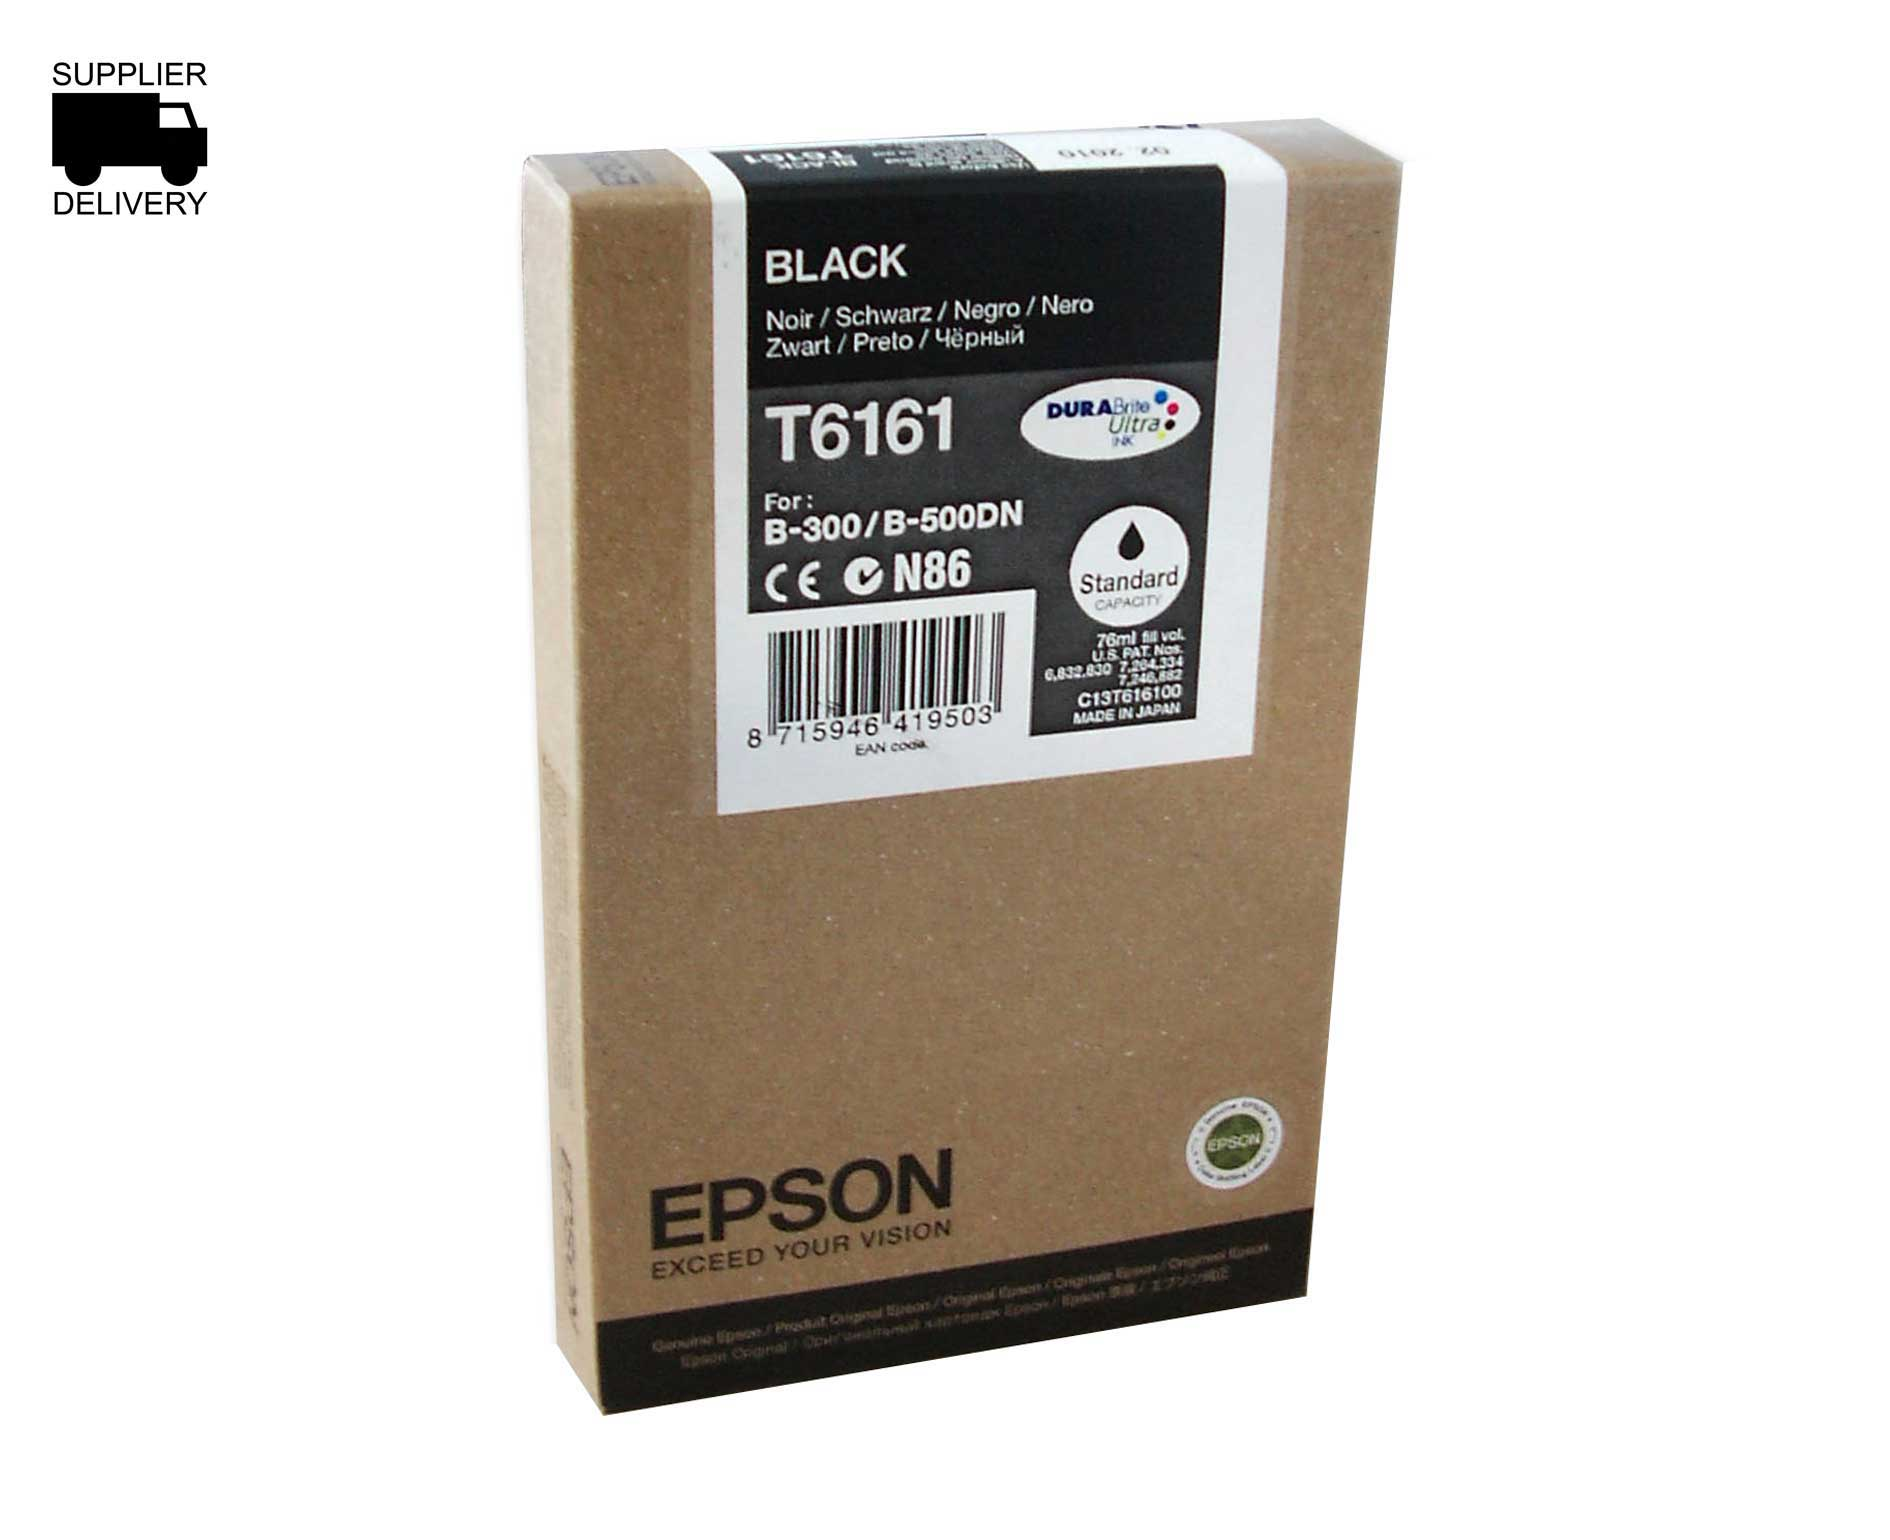 Epson DURABrite T6161 Standard Capacity Black Ink Cartridge C13T616100